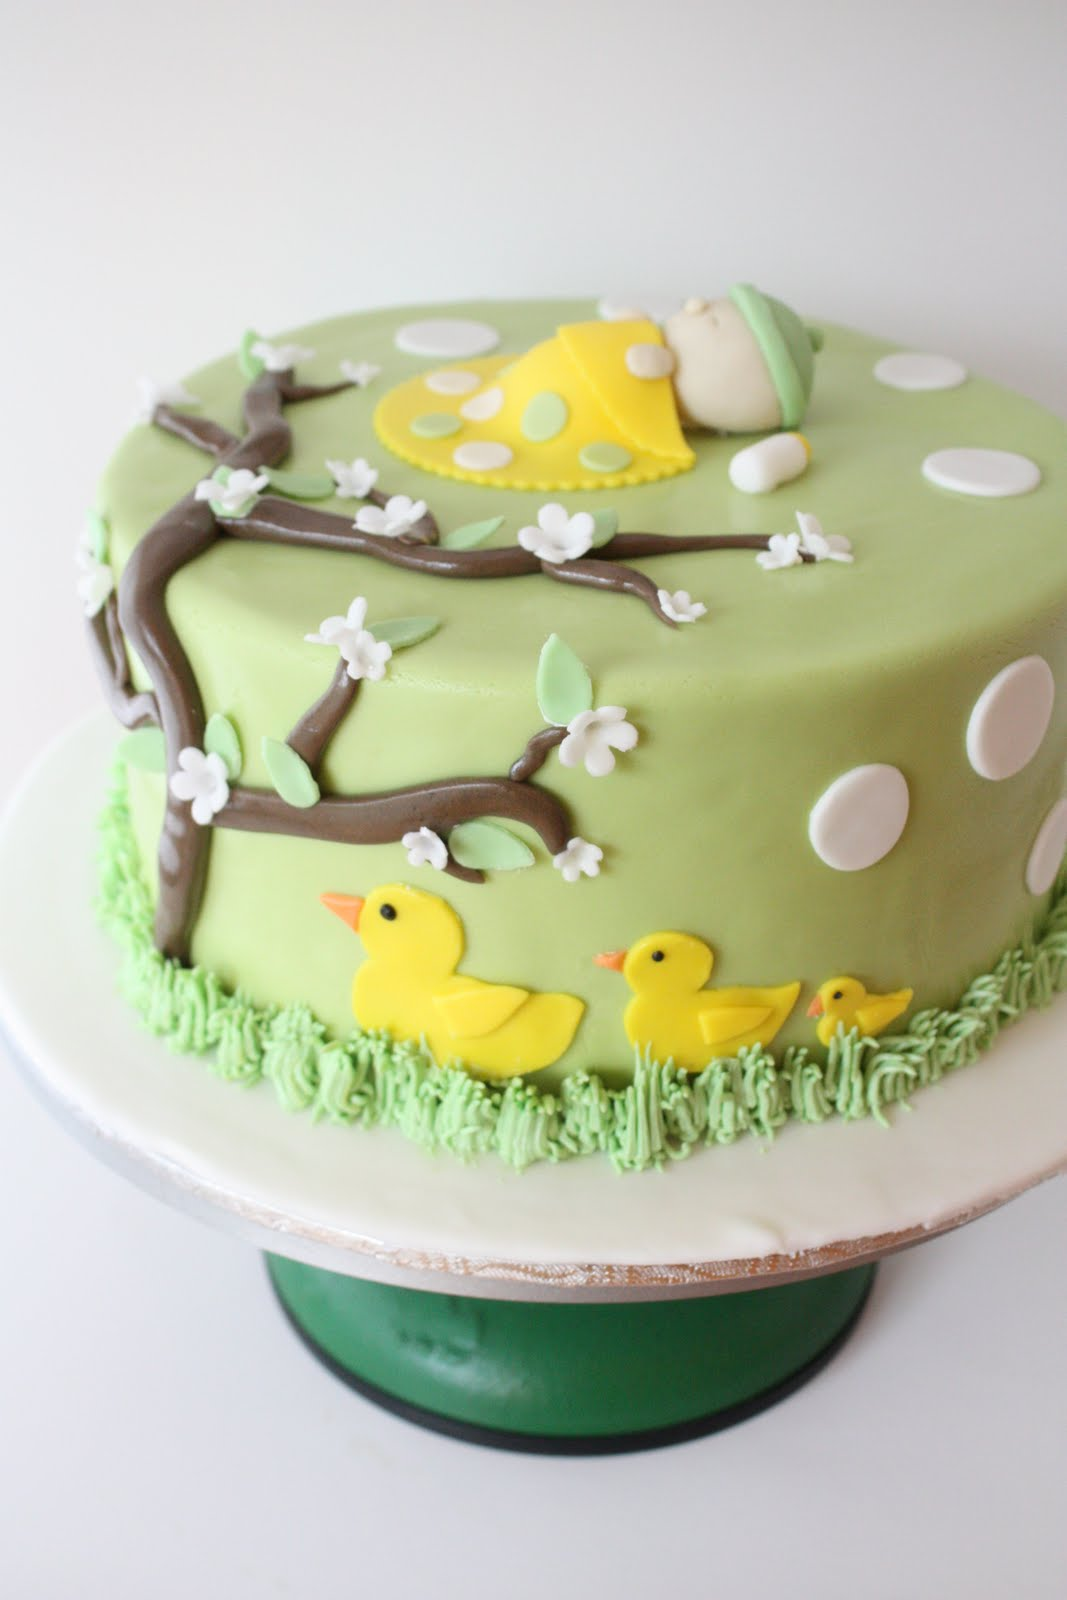 I Also Made A Cute Baby Shower Cake Where The Theme Was Ducks With Yellow  And Green Colours. I Love The Babyu0027s Face And The Tiny Bottle!